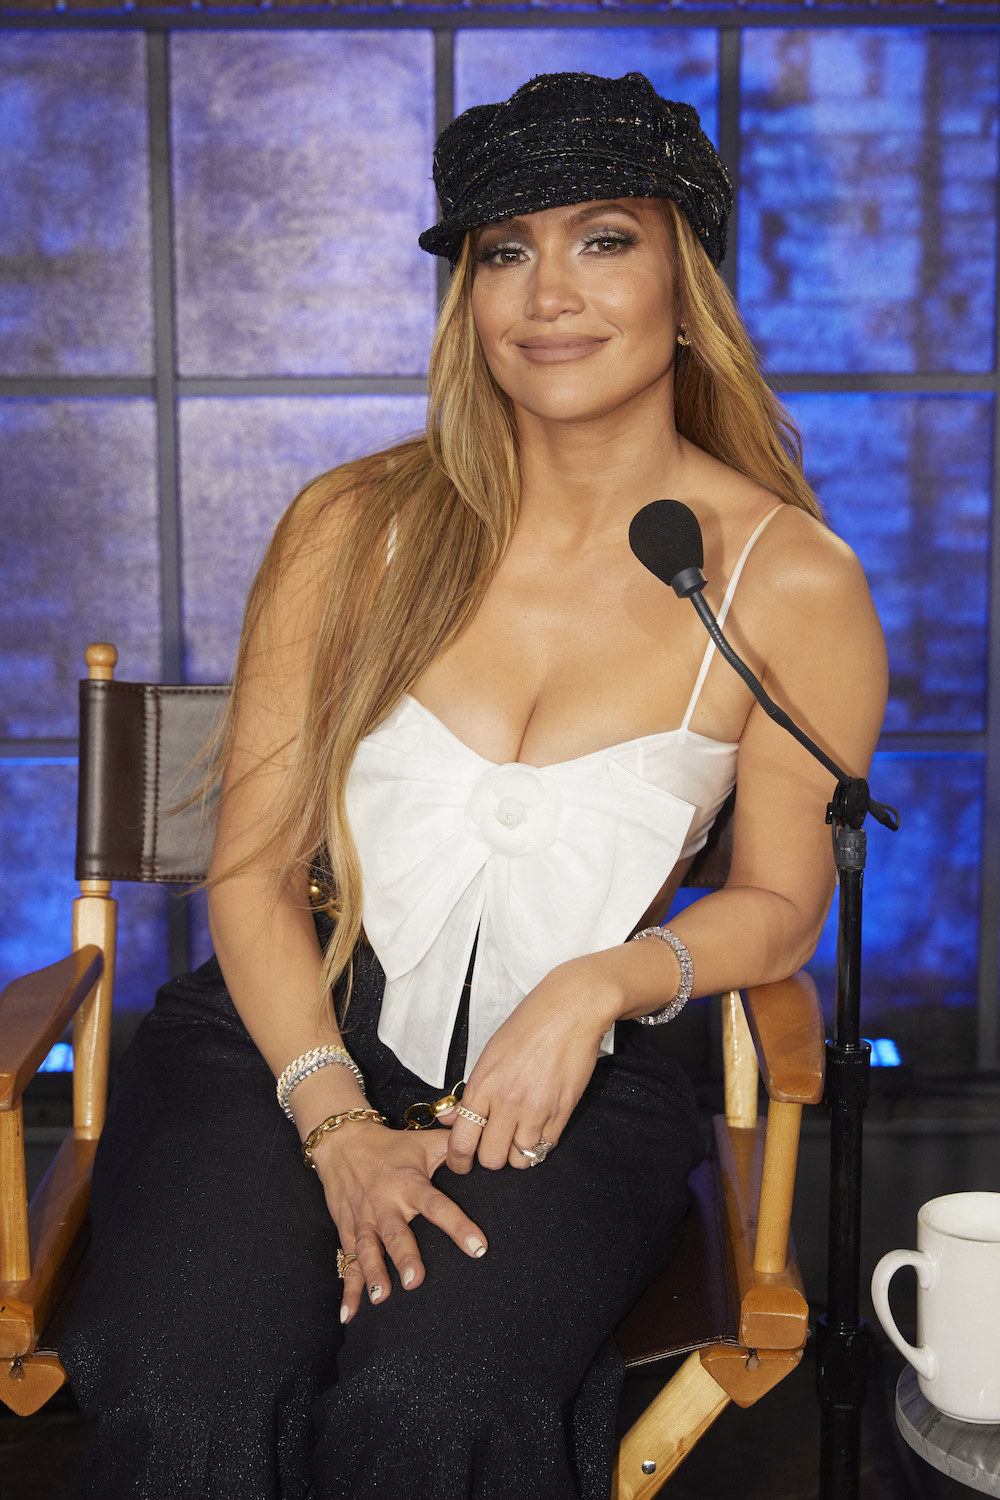 J. Lo sitting in a chair